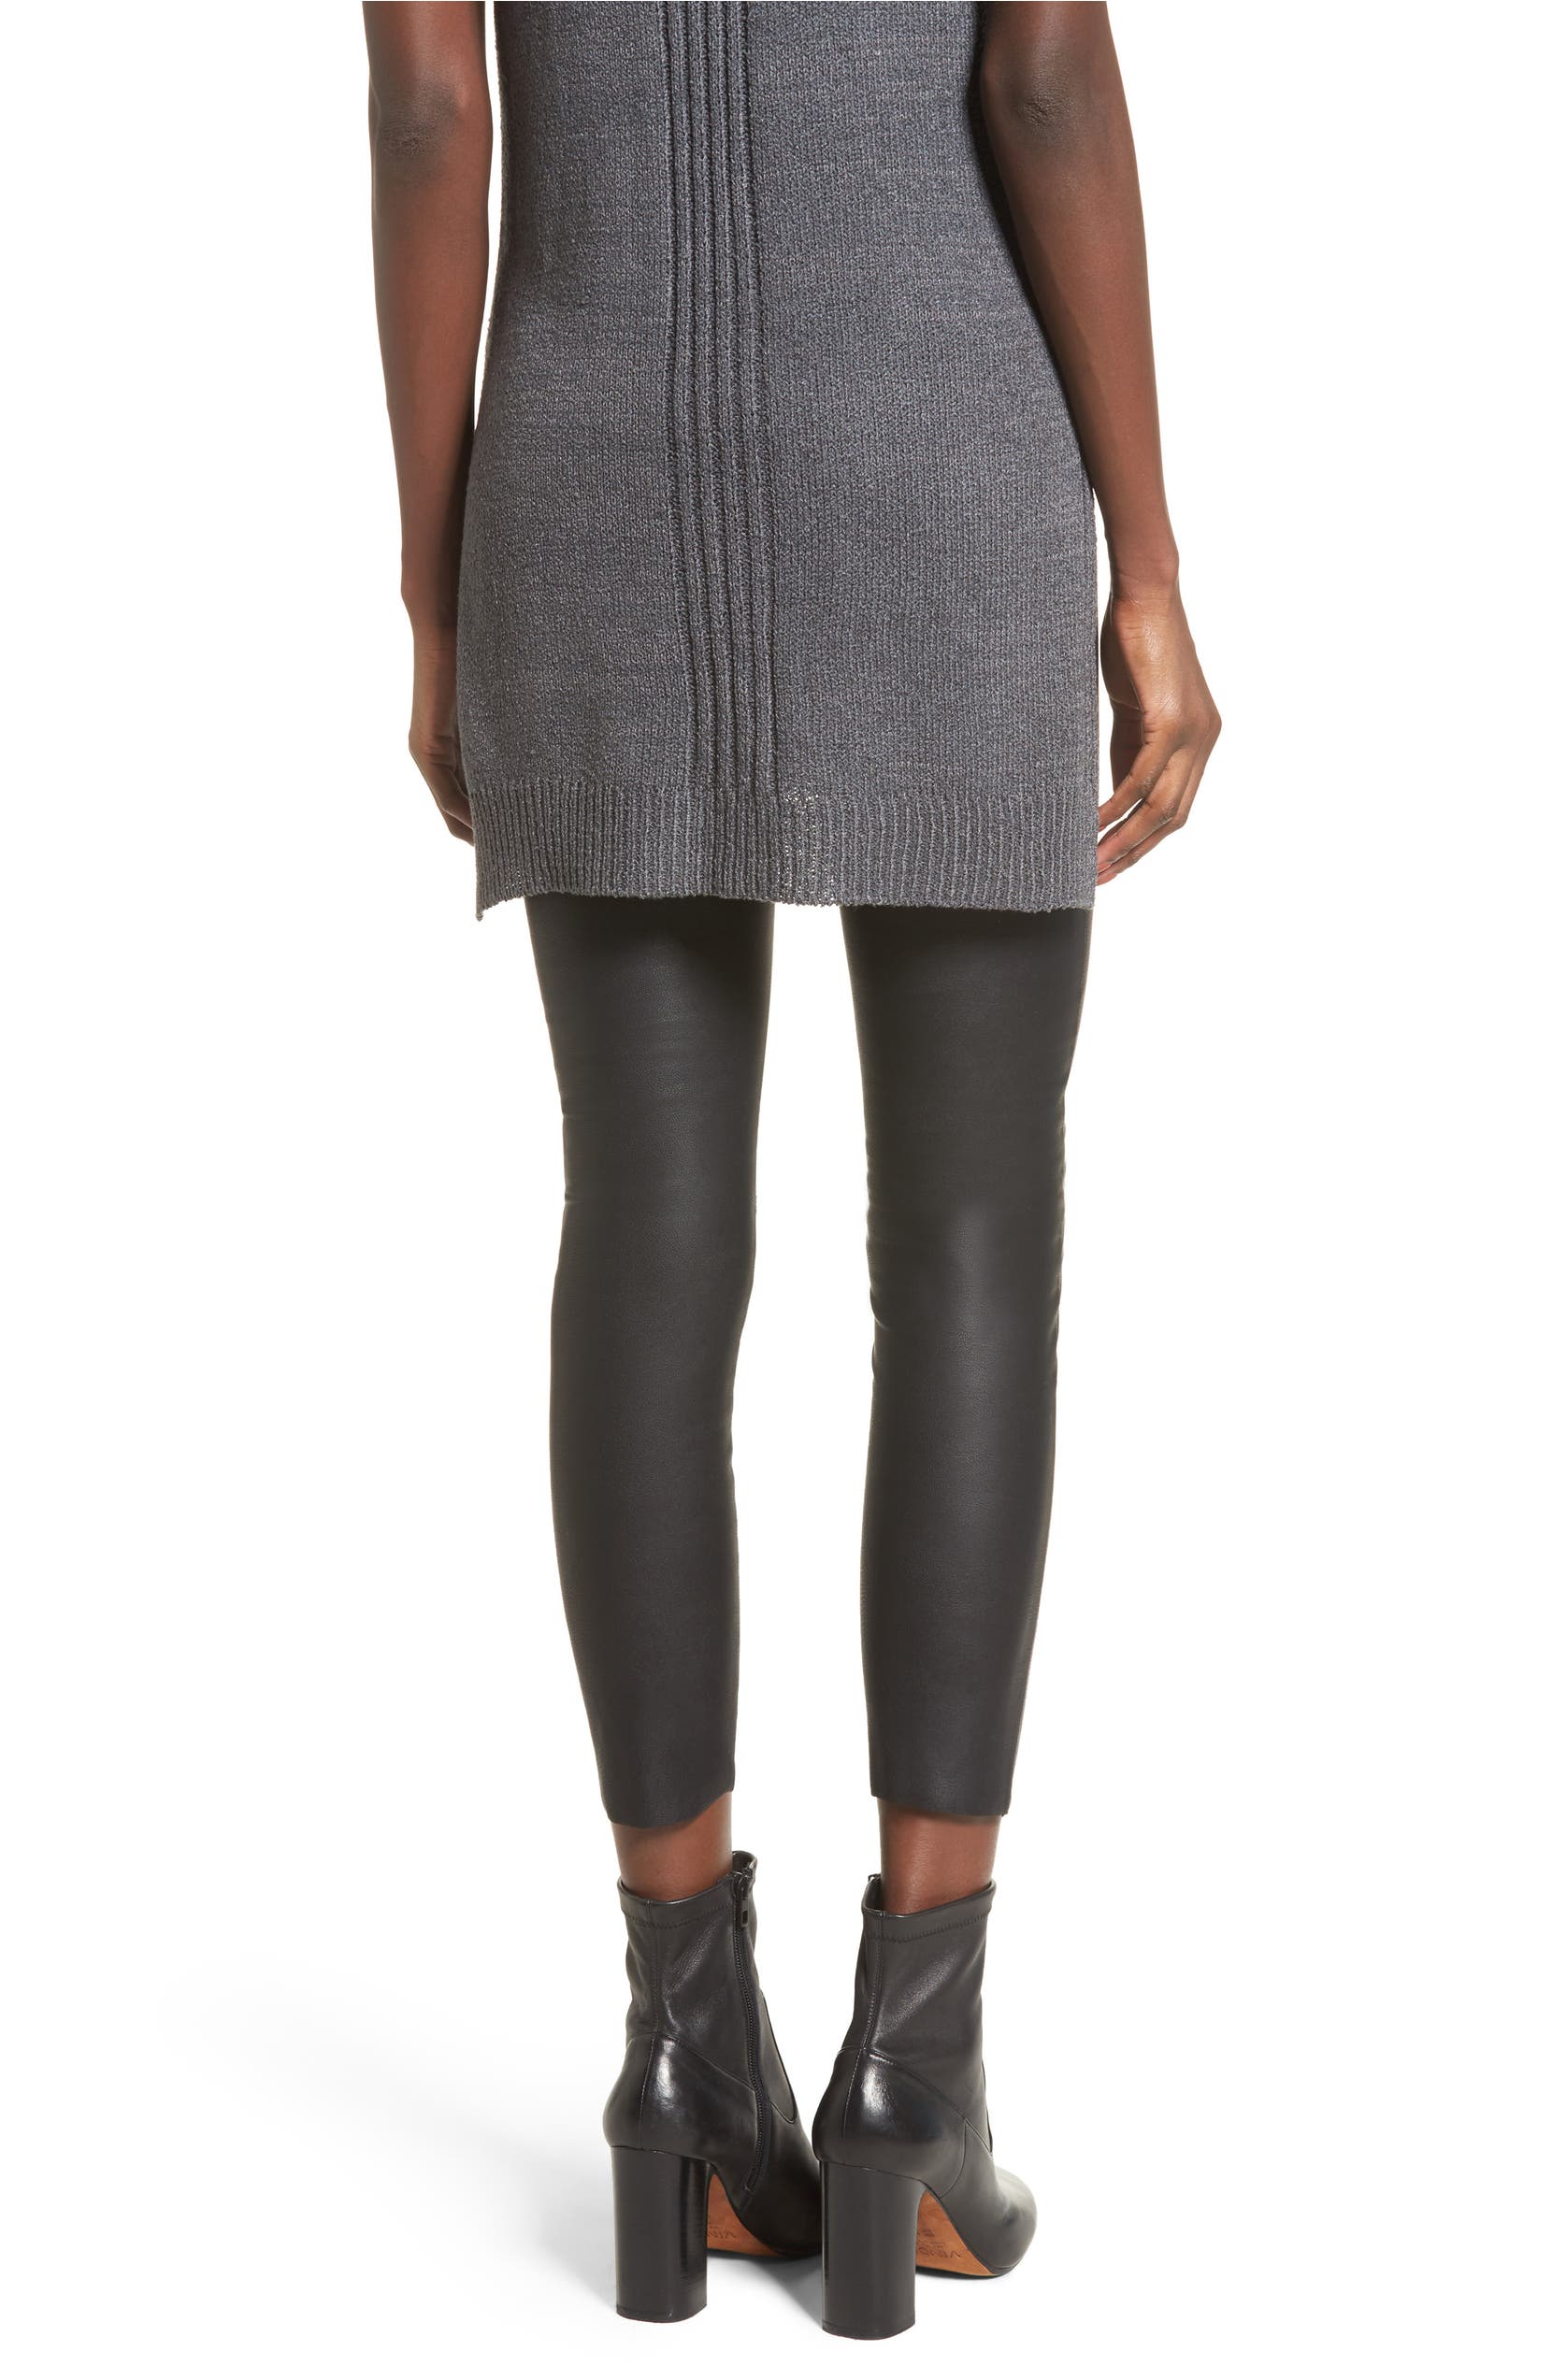 a81795c714a4c David Lerner Gemma High Waist Faux Leather Leggings | Nordstrom